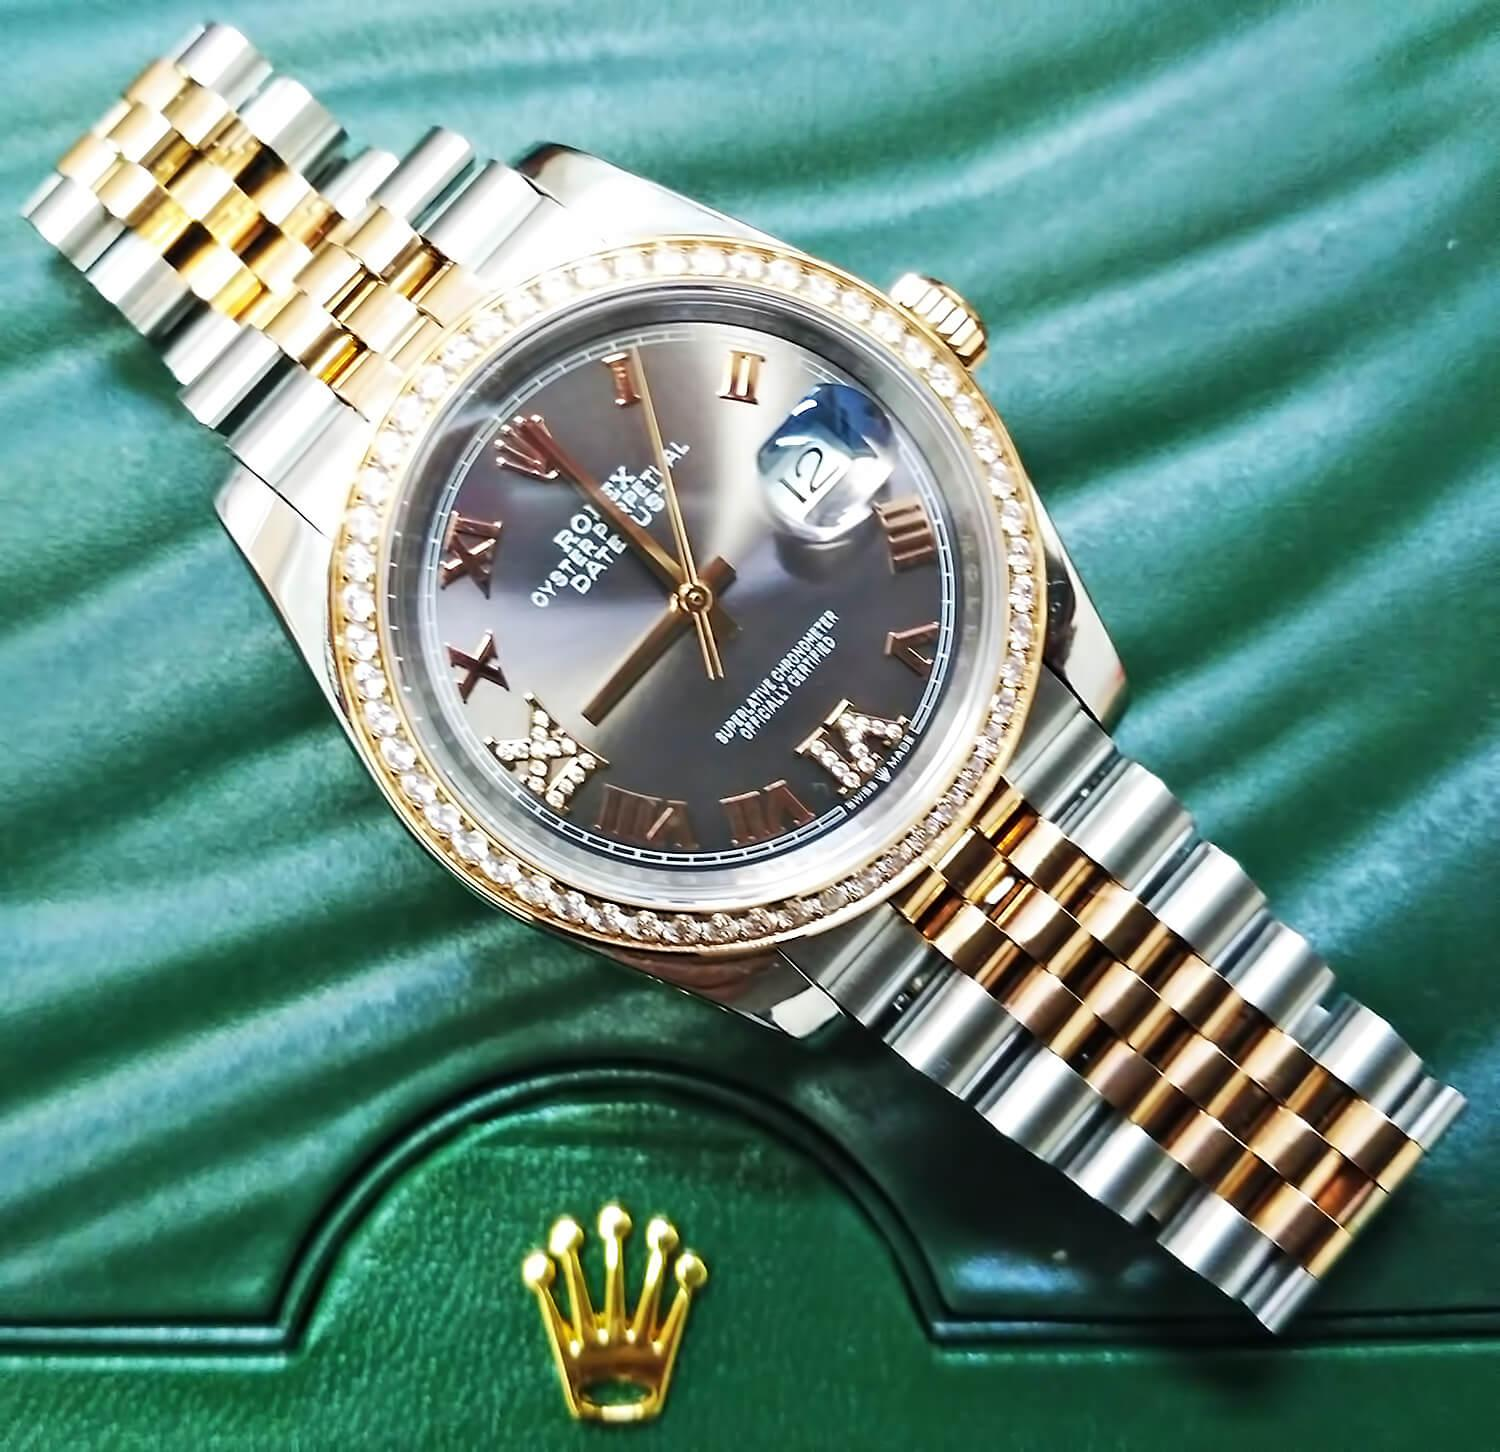 Точная реплика Rolex Oyster Perpetual Datejust 36mm Steel and Everose Gold